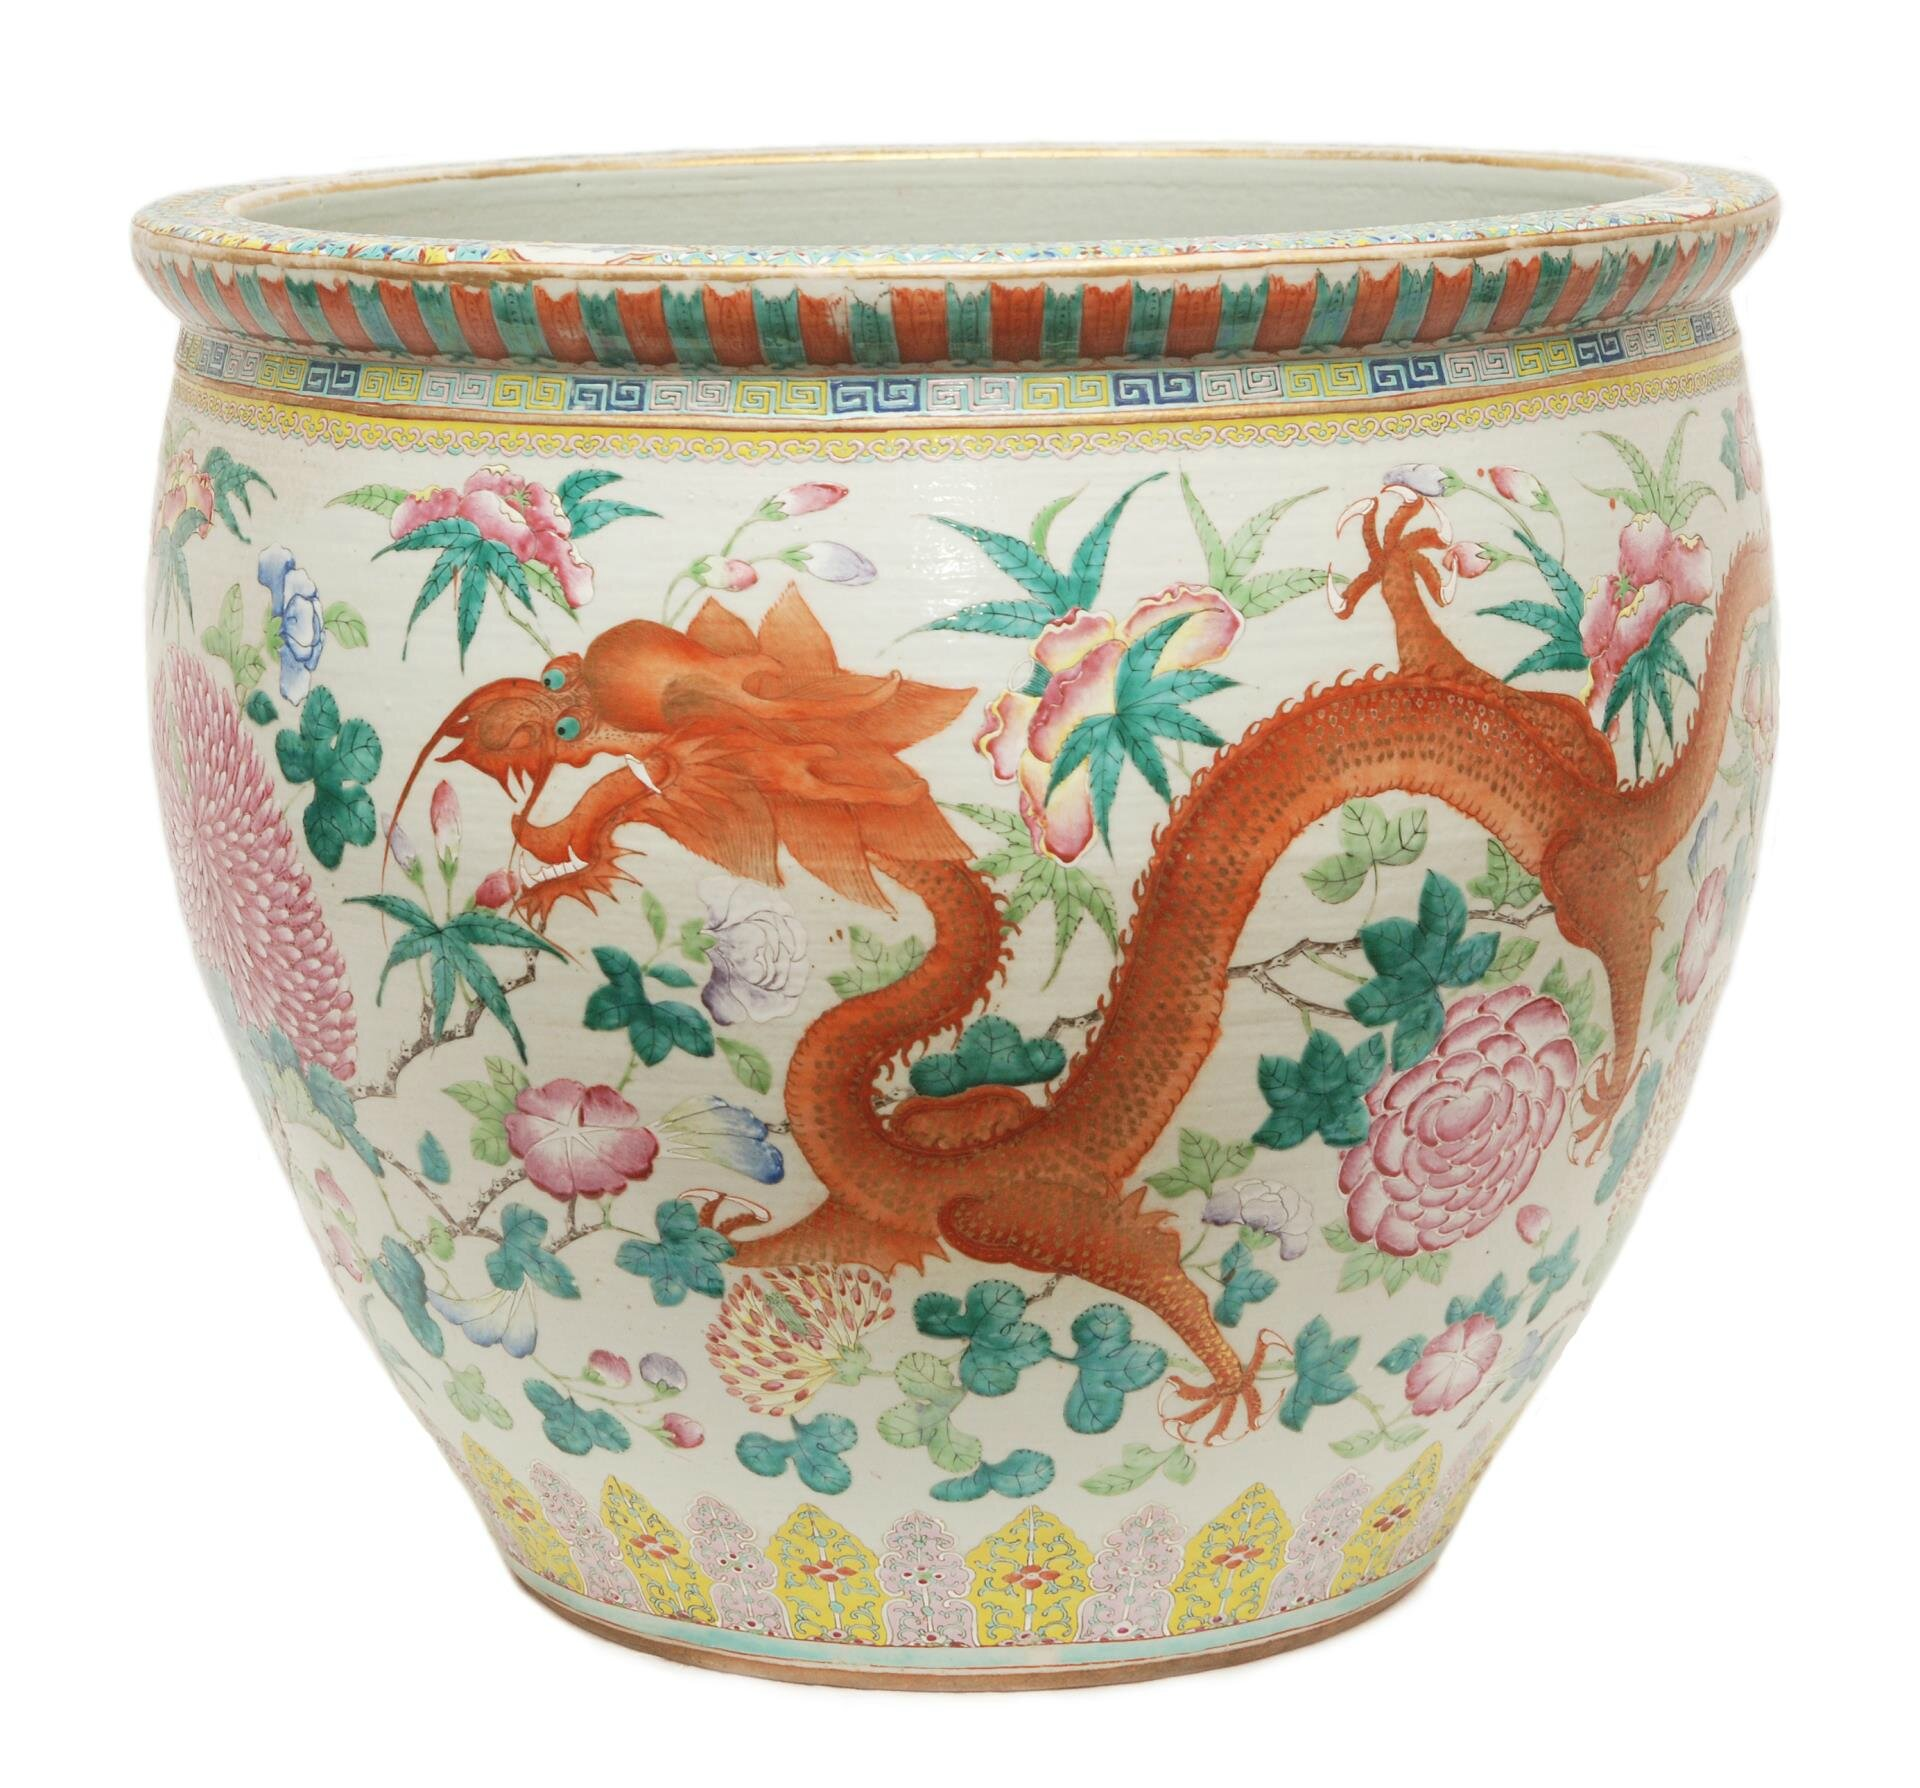 Large Guangxu famille rose porcelain fish bowl. Estimate $6000-$10000. Sold for $16,520. Elite Decorative Arts